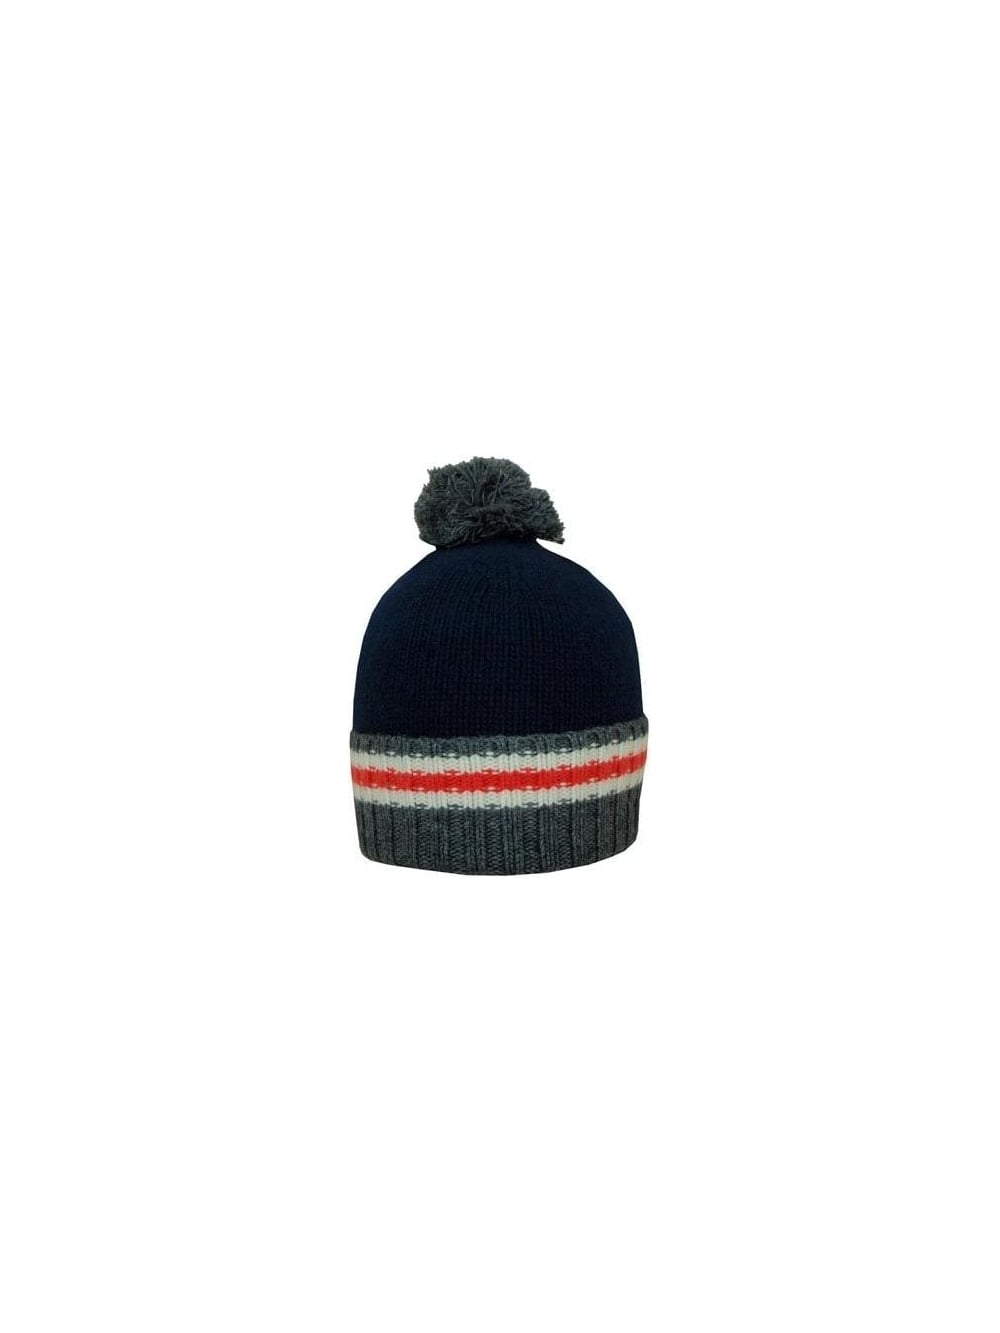 63bd2b13 Lacoste Bobble Hat in Navy/Grey - Northern Threads